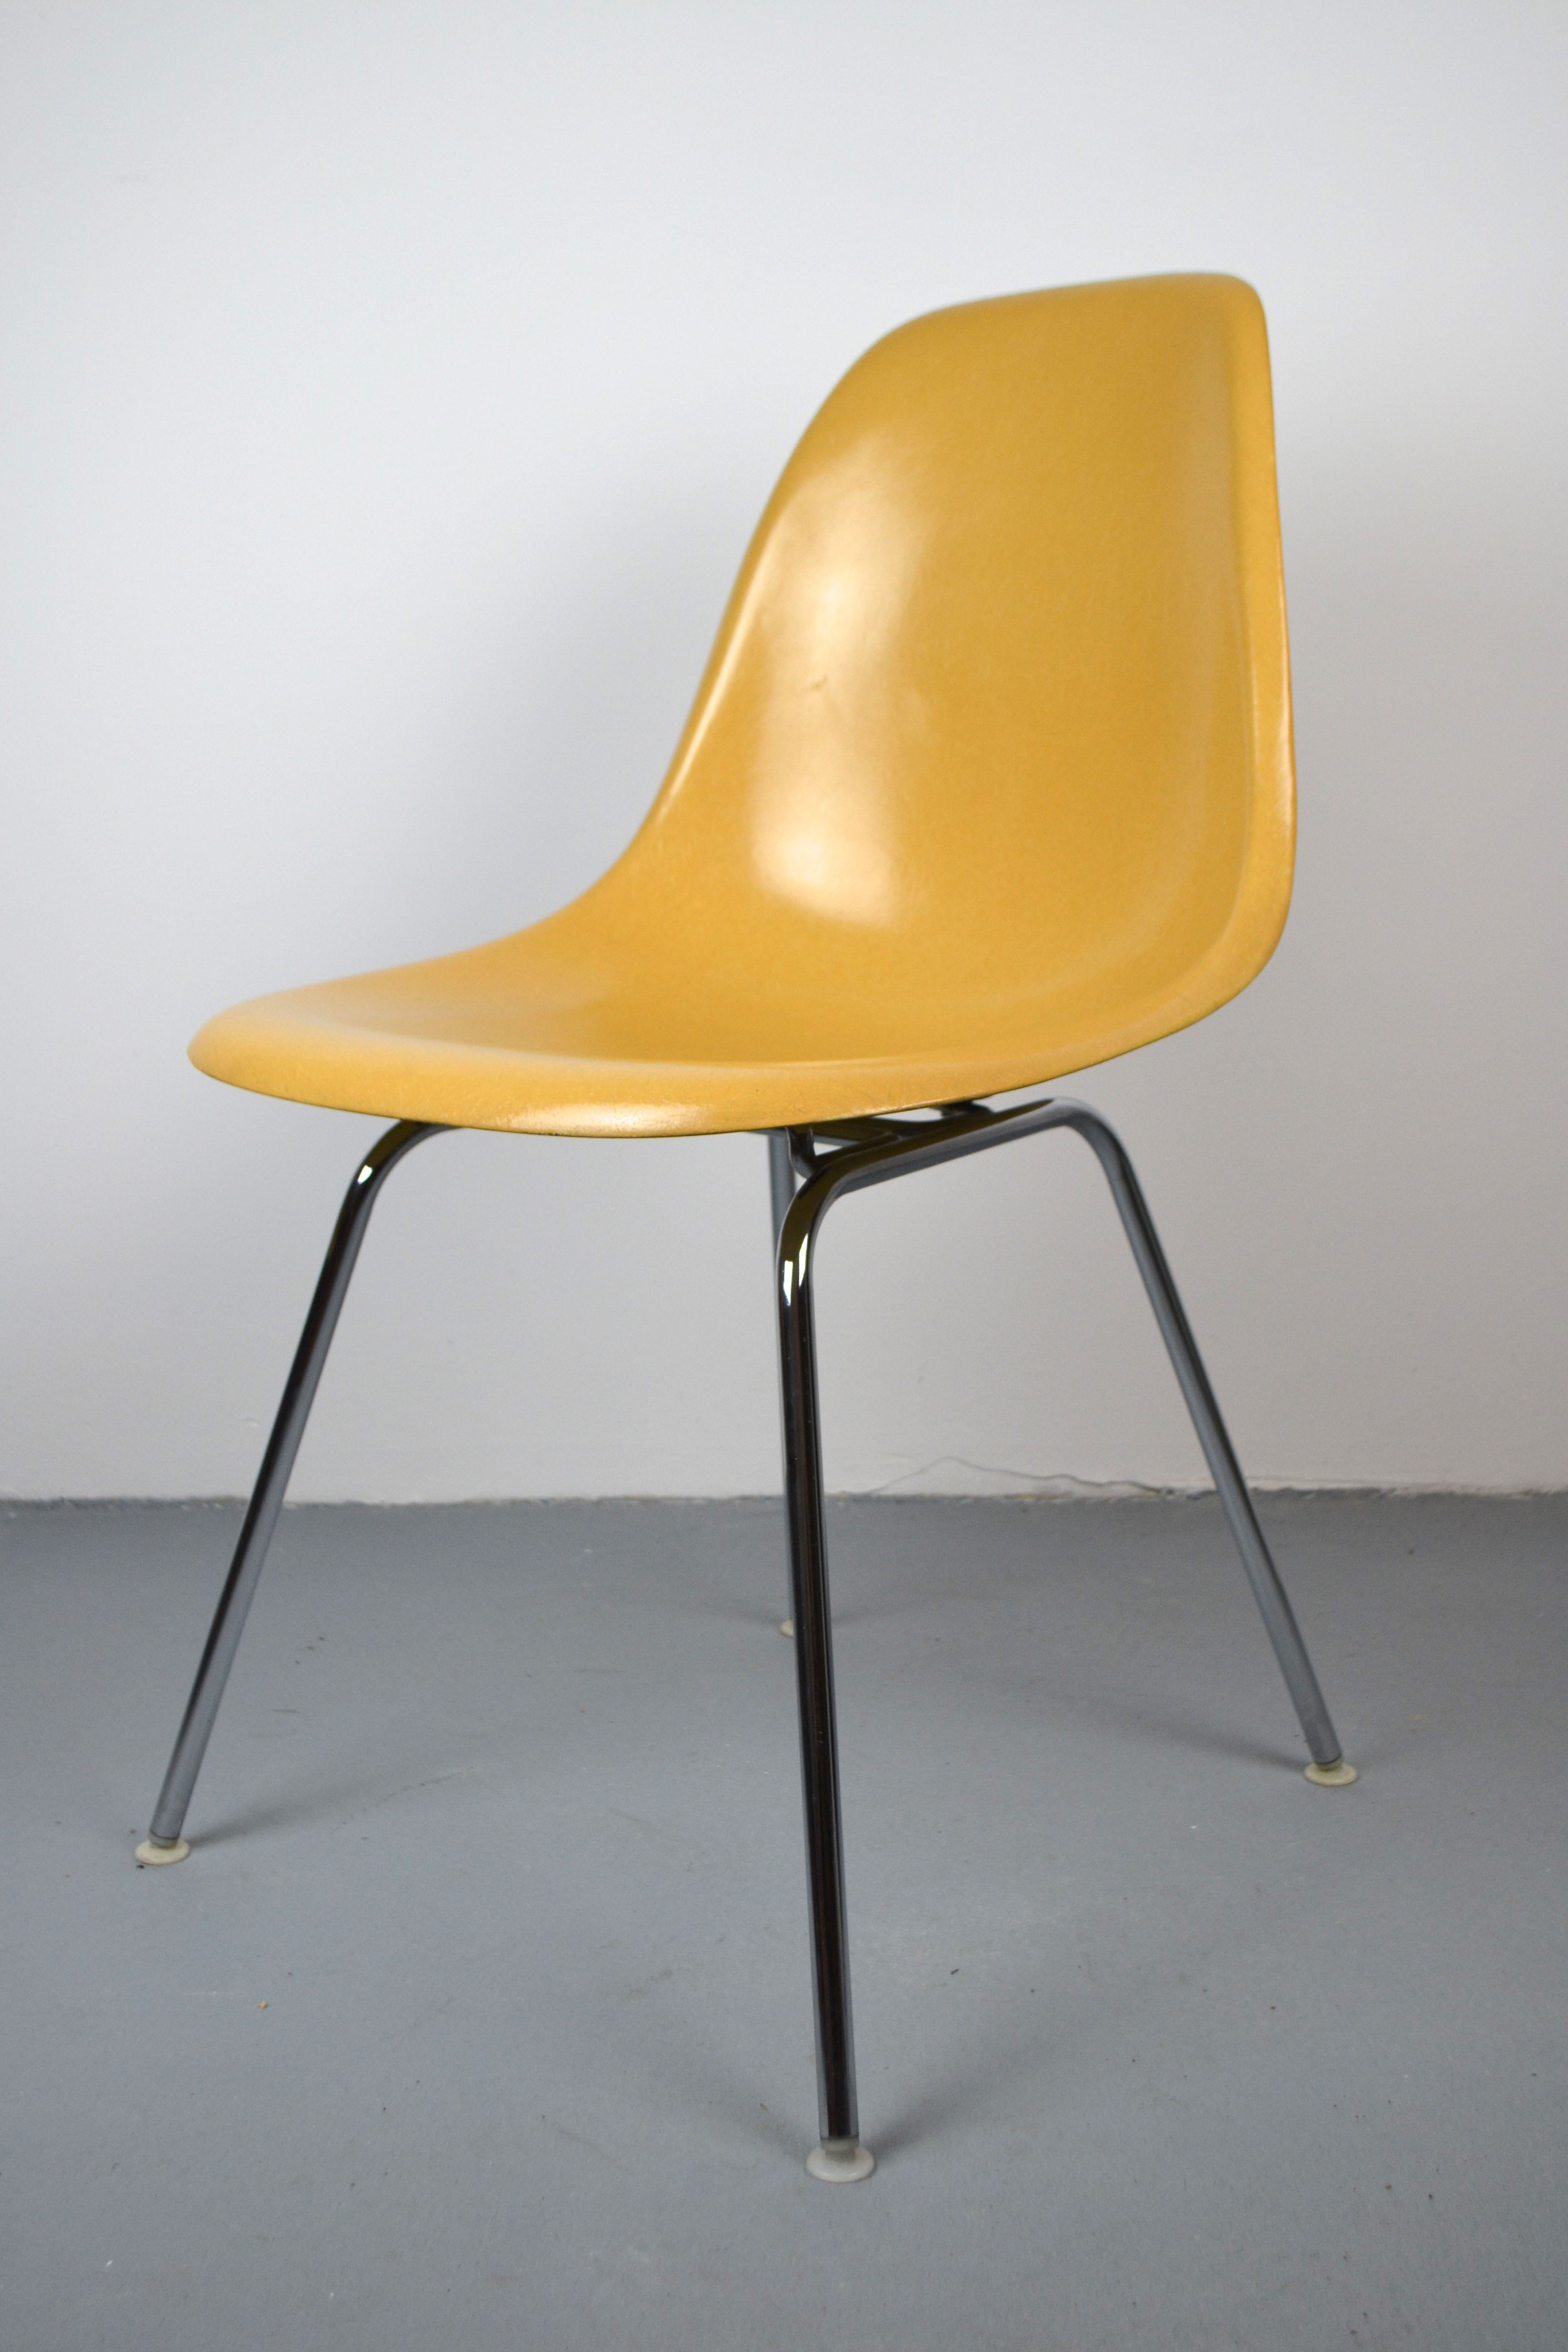 Sidechairs – Eames Fiberglass Chairs, Shock Mounts & Mid With Regard To Plastic Arm Chairs With Rocking Legs (View 7 of 20)